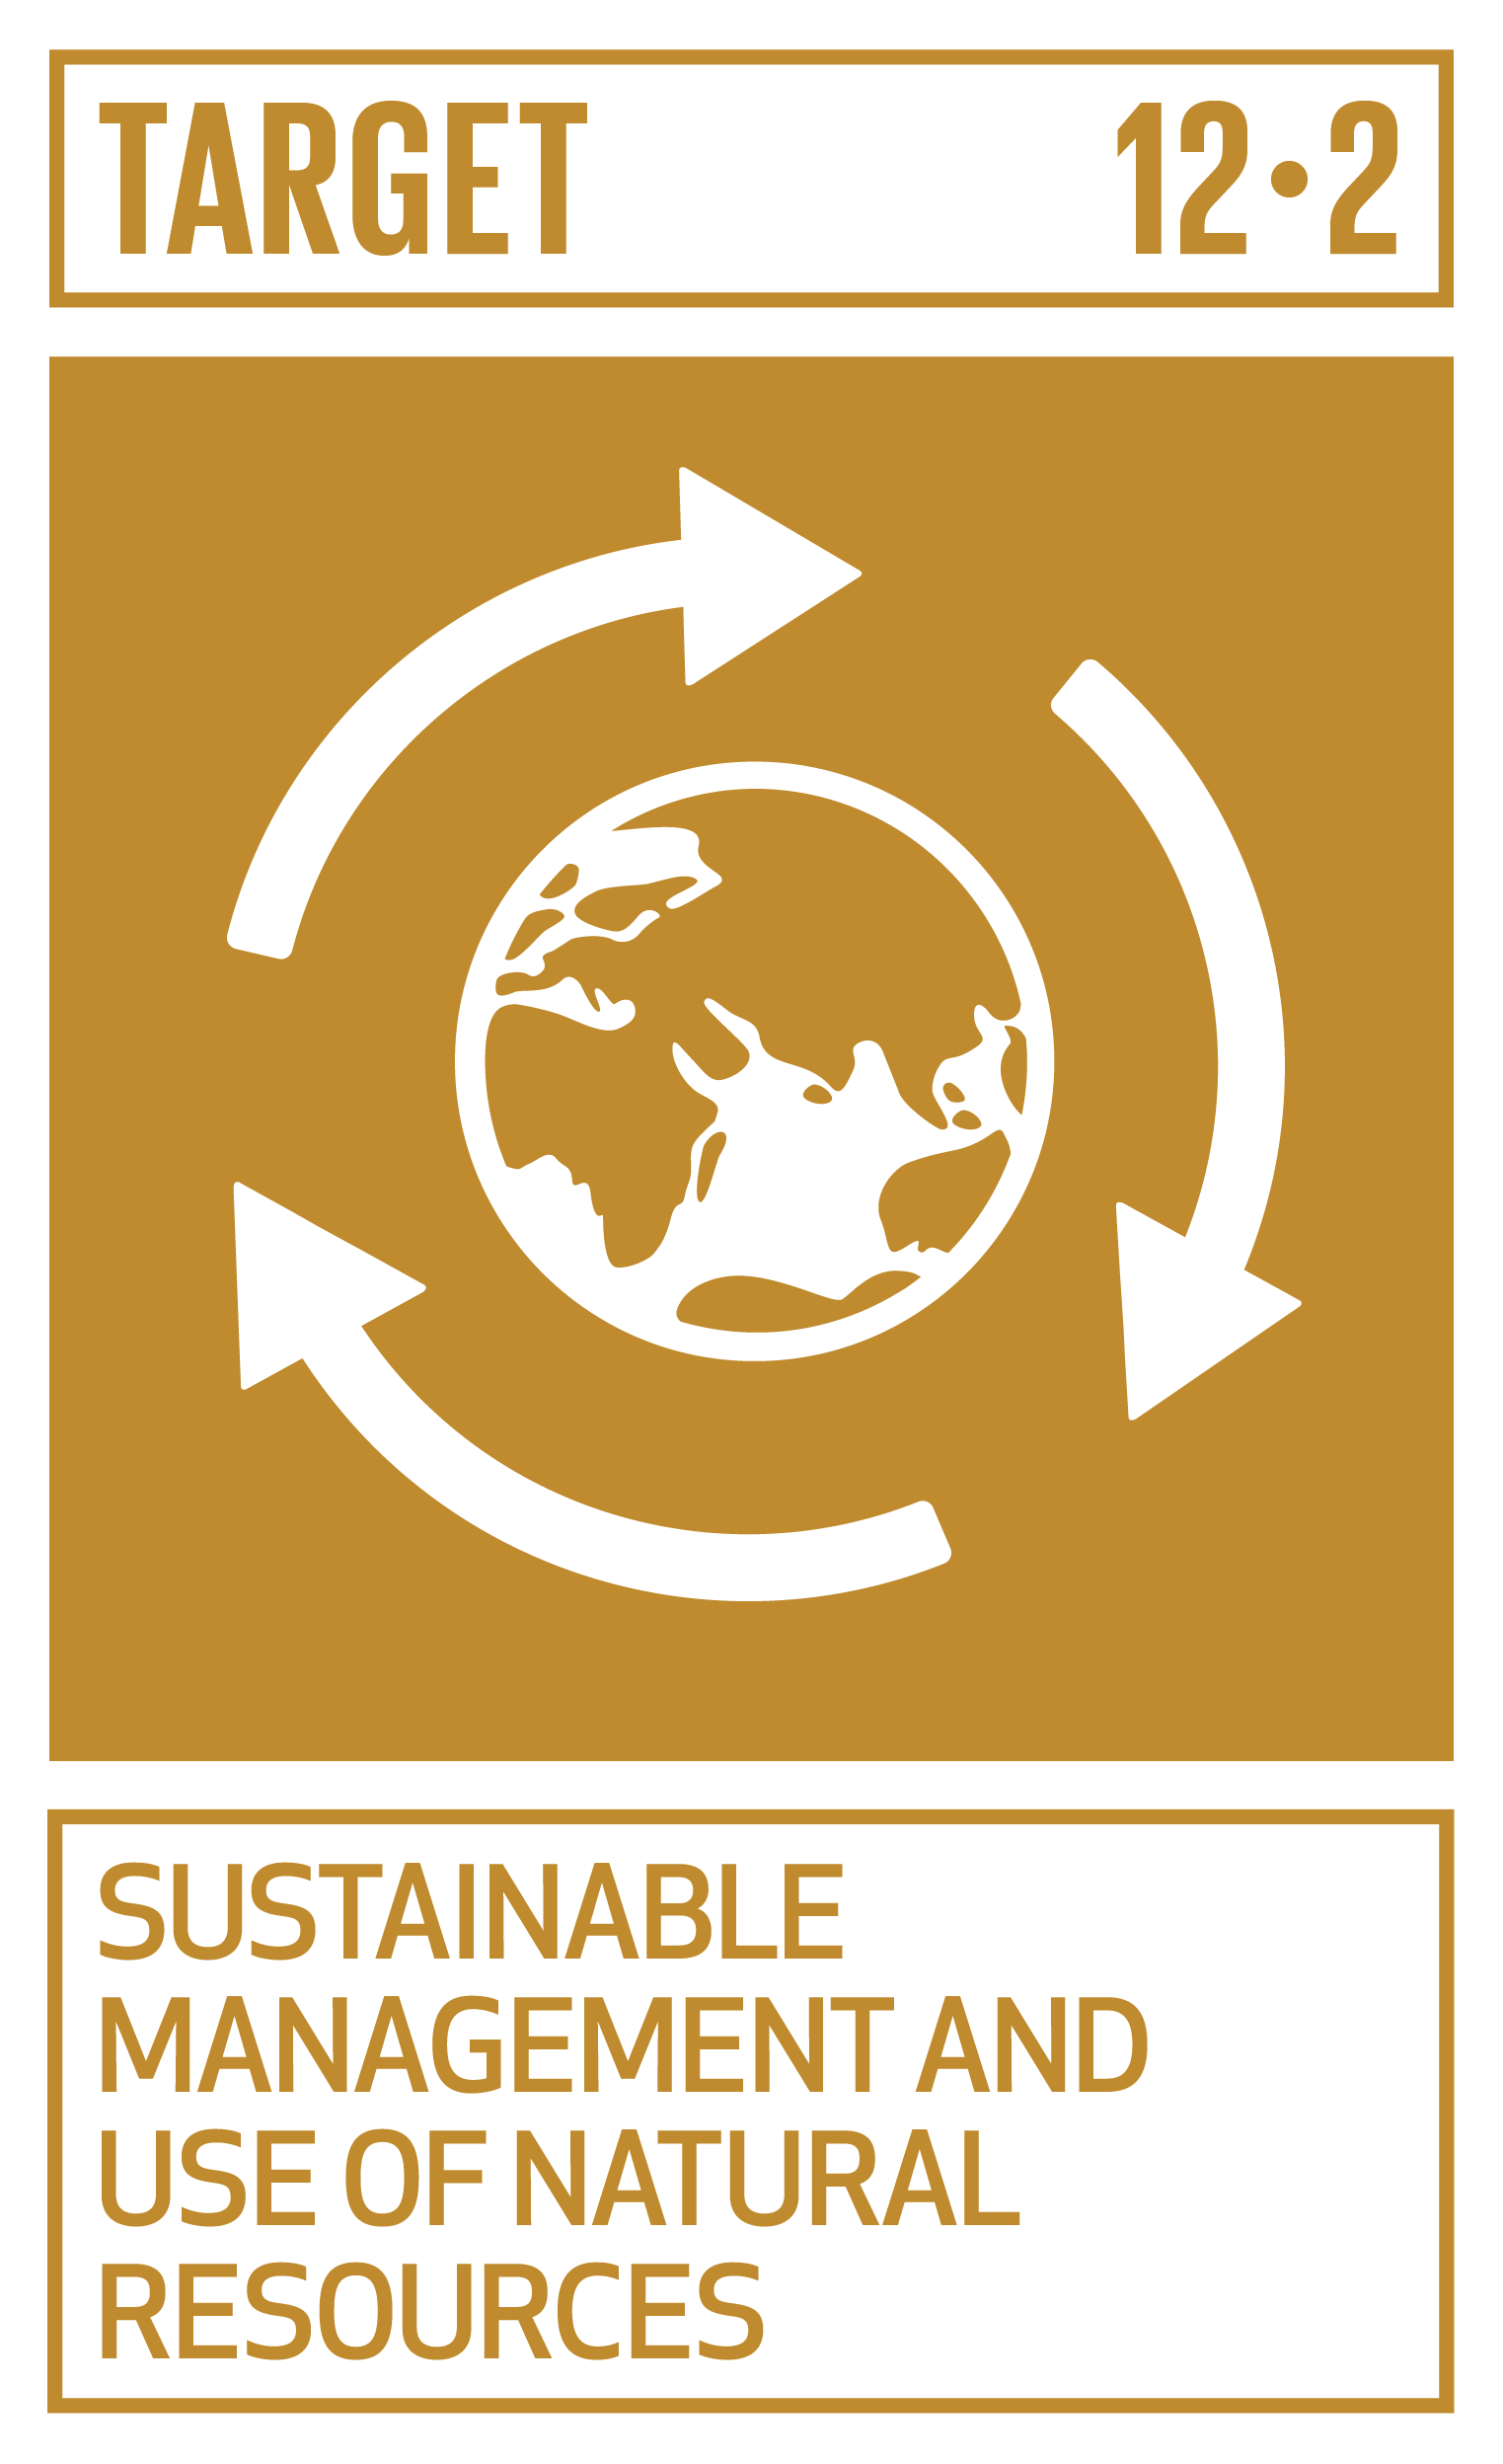 By 2030, achieve the sustainable management and efficient use of natural resources.   INDICATORS    12.2.1  Material footprint, material footprint per capita, and material footprint per GDP   12.2.2  Domestic material consumption, domestic material consumption per capita, and domestic material consumption per GDP